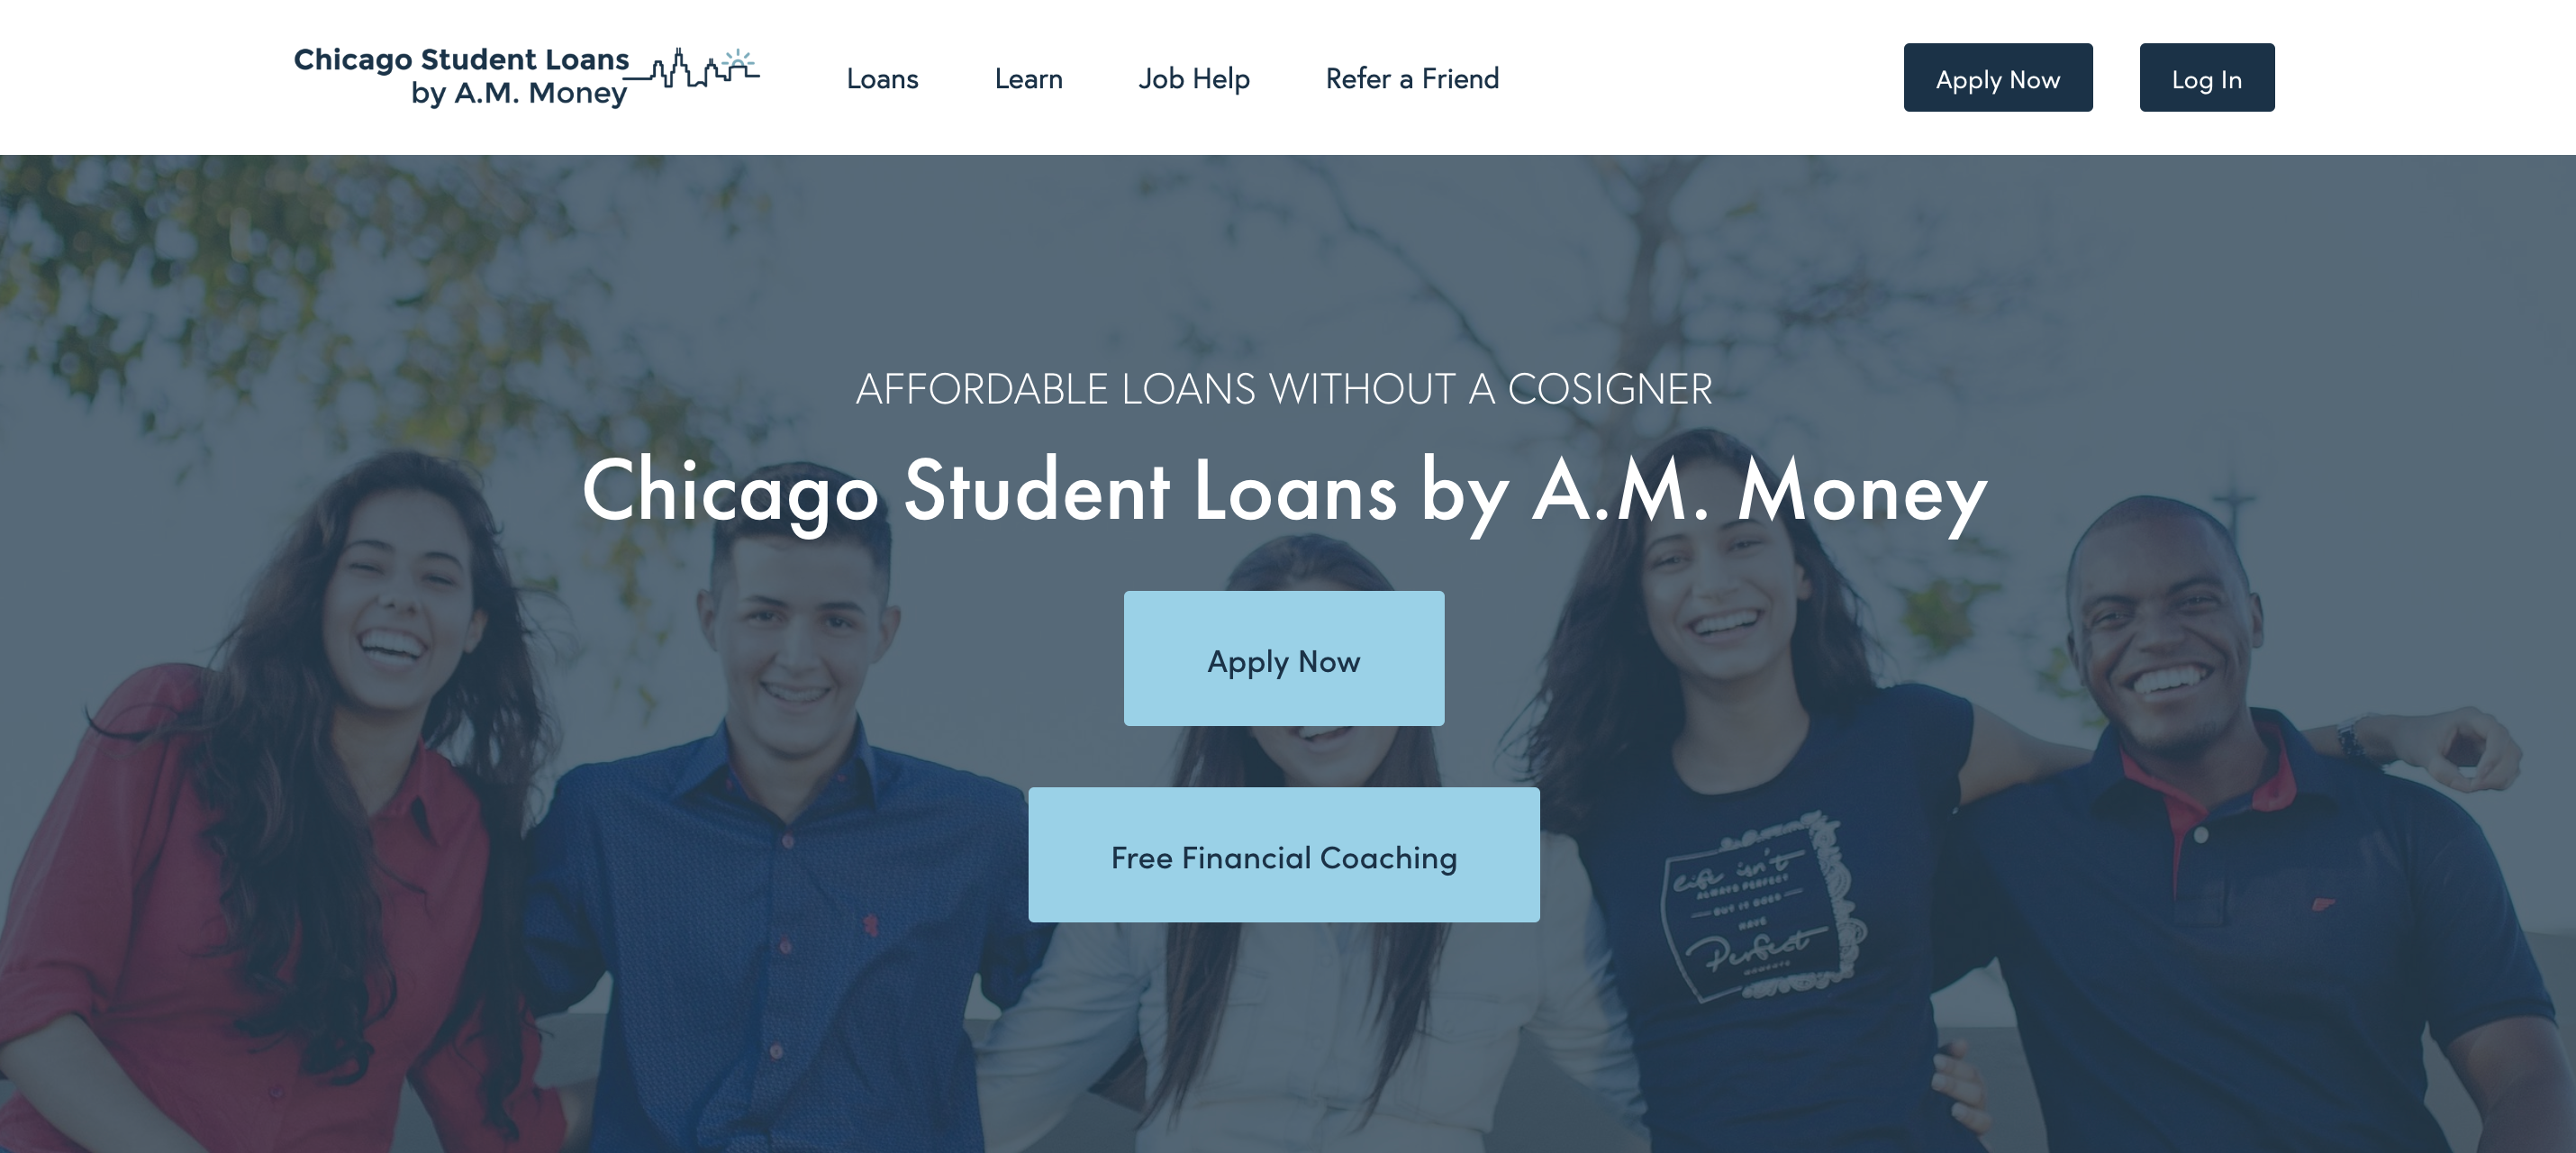 A.M. Money Simplifying Student Loan Approval to Help Low Income Group Students